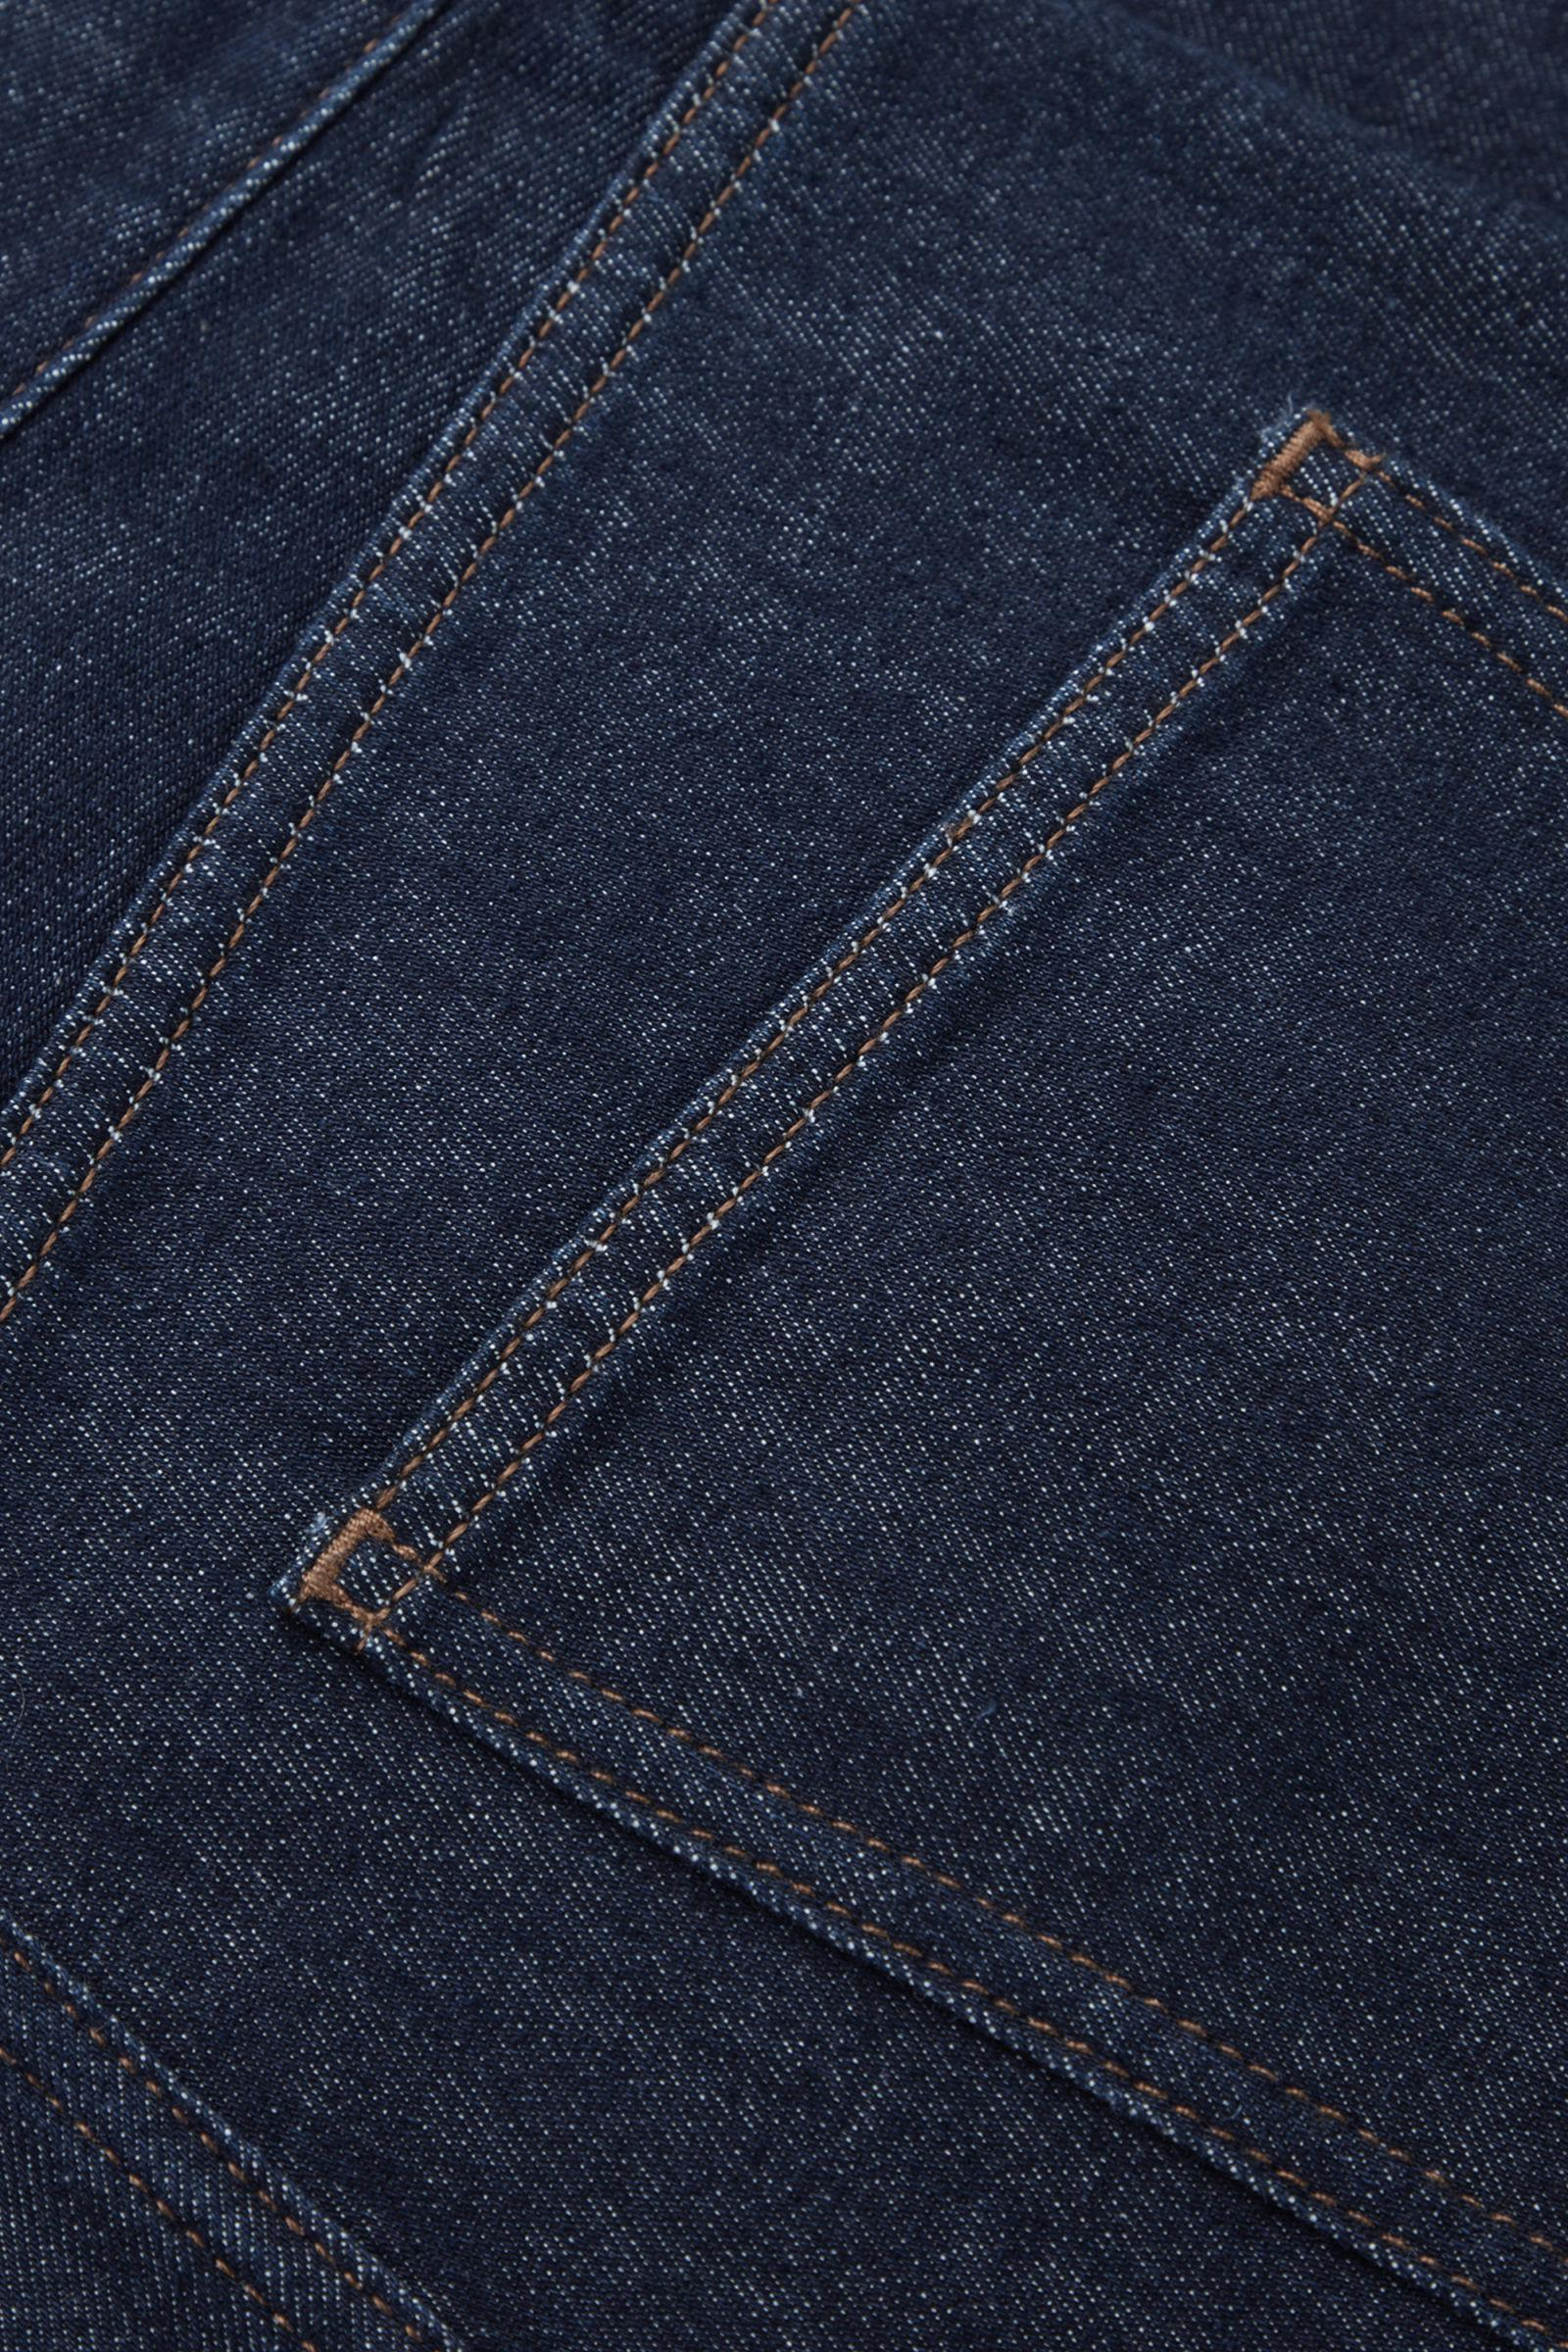 FLARED RECYCLED COTTON DENIM PANTS 9